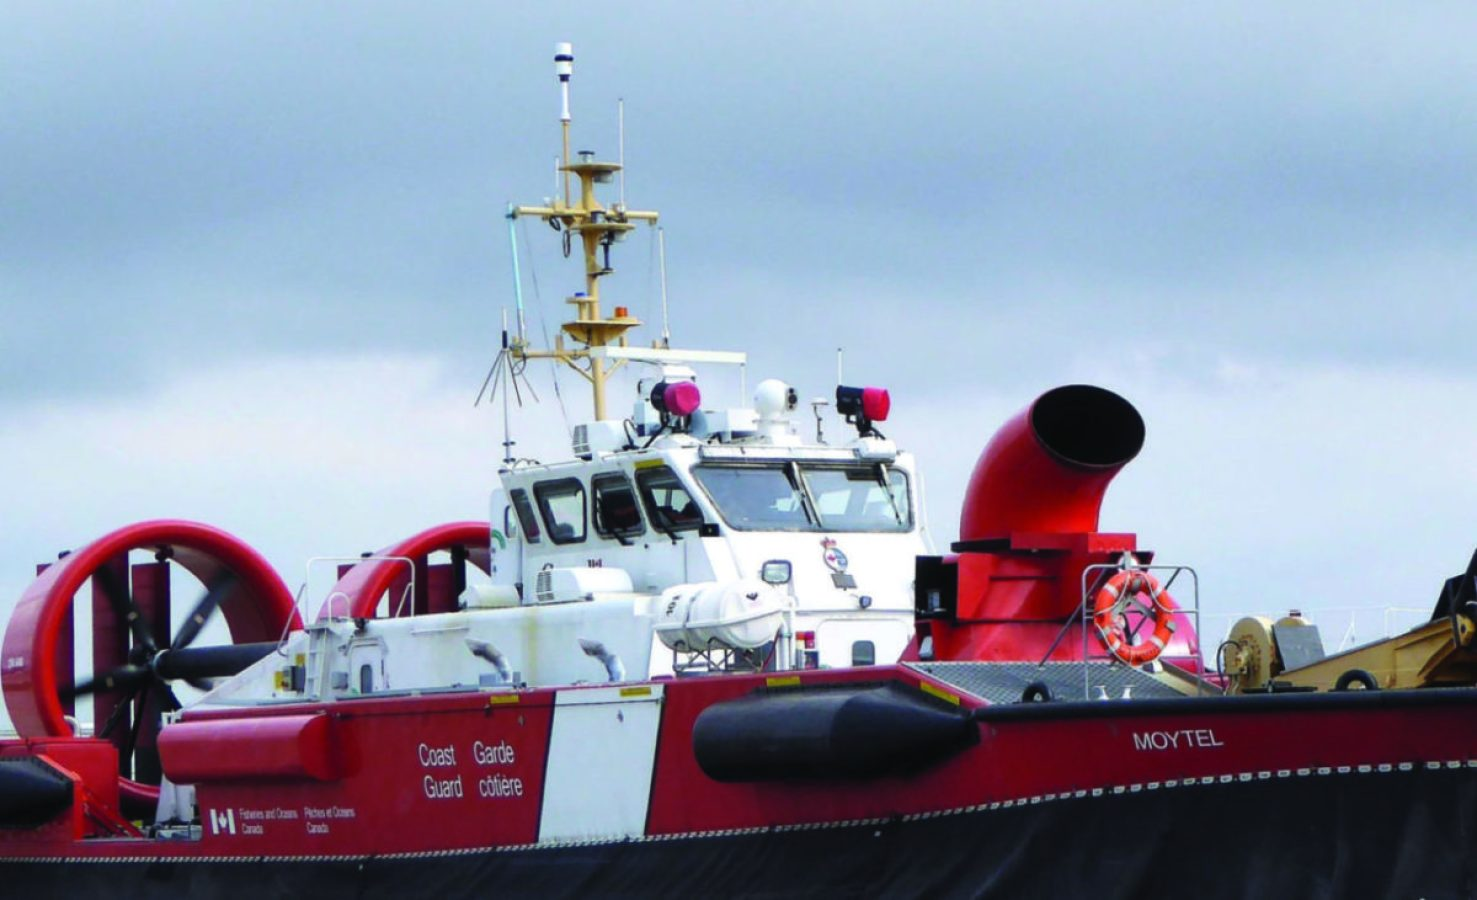 The Canadian Coast Guard Hovercraft Moytel, homeported in Richmond, BC, is equipped with a RHOTHETA RT-500-M radio direction finder. In February 2020, the Canadian Coast Guard awarded a contract to Seacoast Marine Electronics to supply the RT-500-M as a replacement for the ageing radio direction finders installed on their fleet. Seacoast Marine Electronics is a RHOTHETA dealer headquartered in Halifax, Nova Scotia. (ROTHETA image)